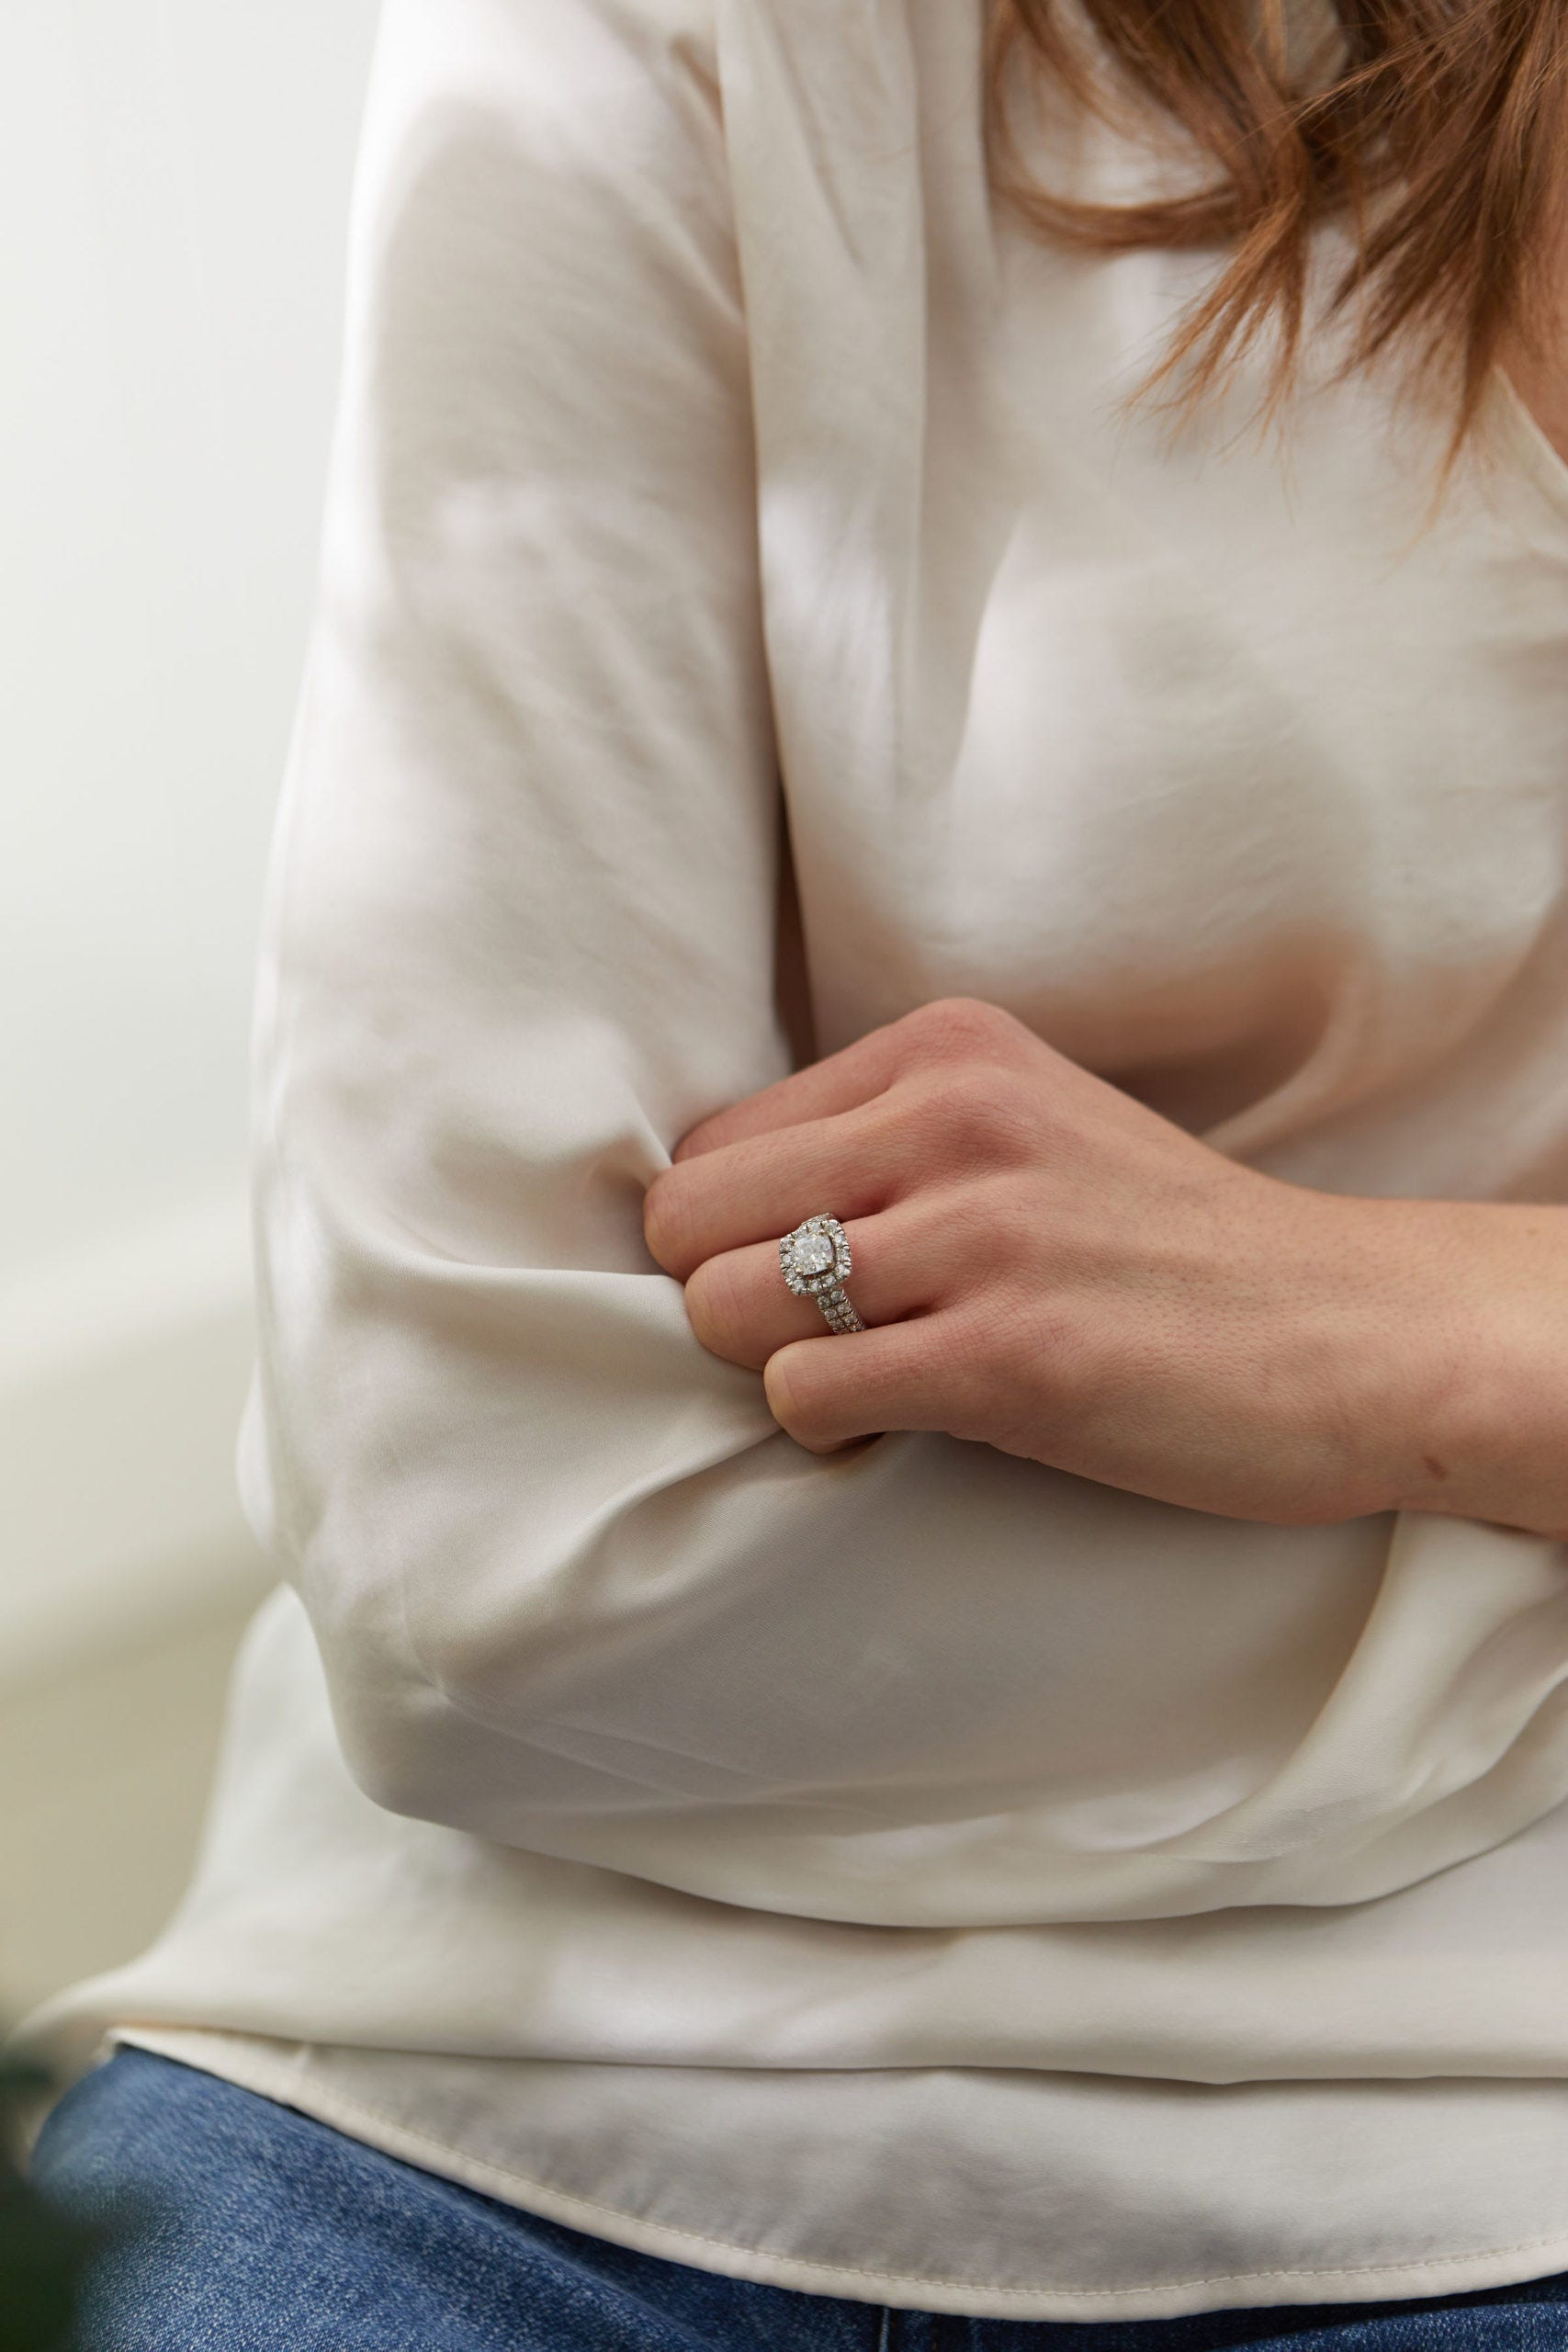 Woman wearing halo style engagment ring on hand